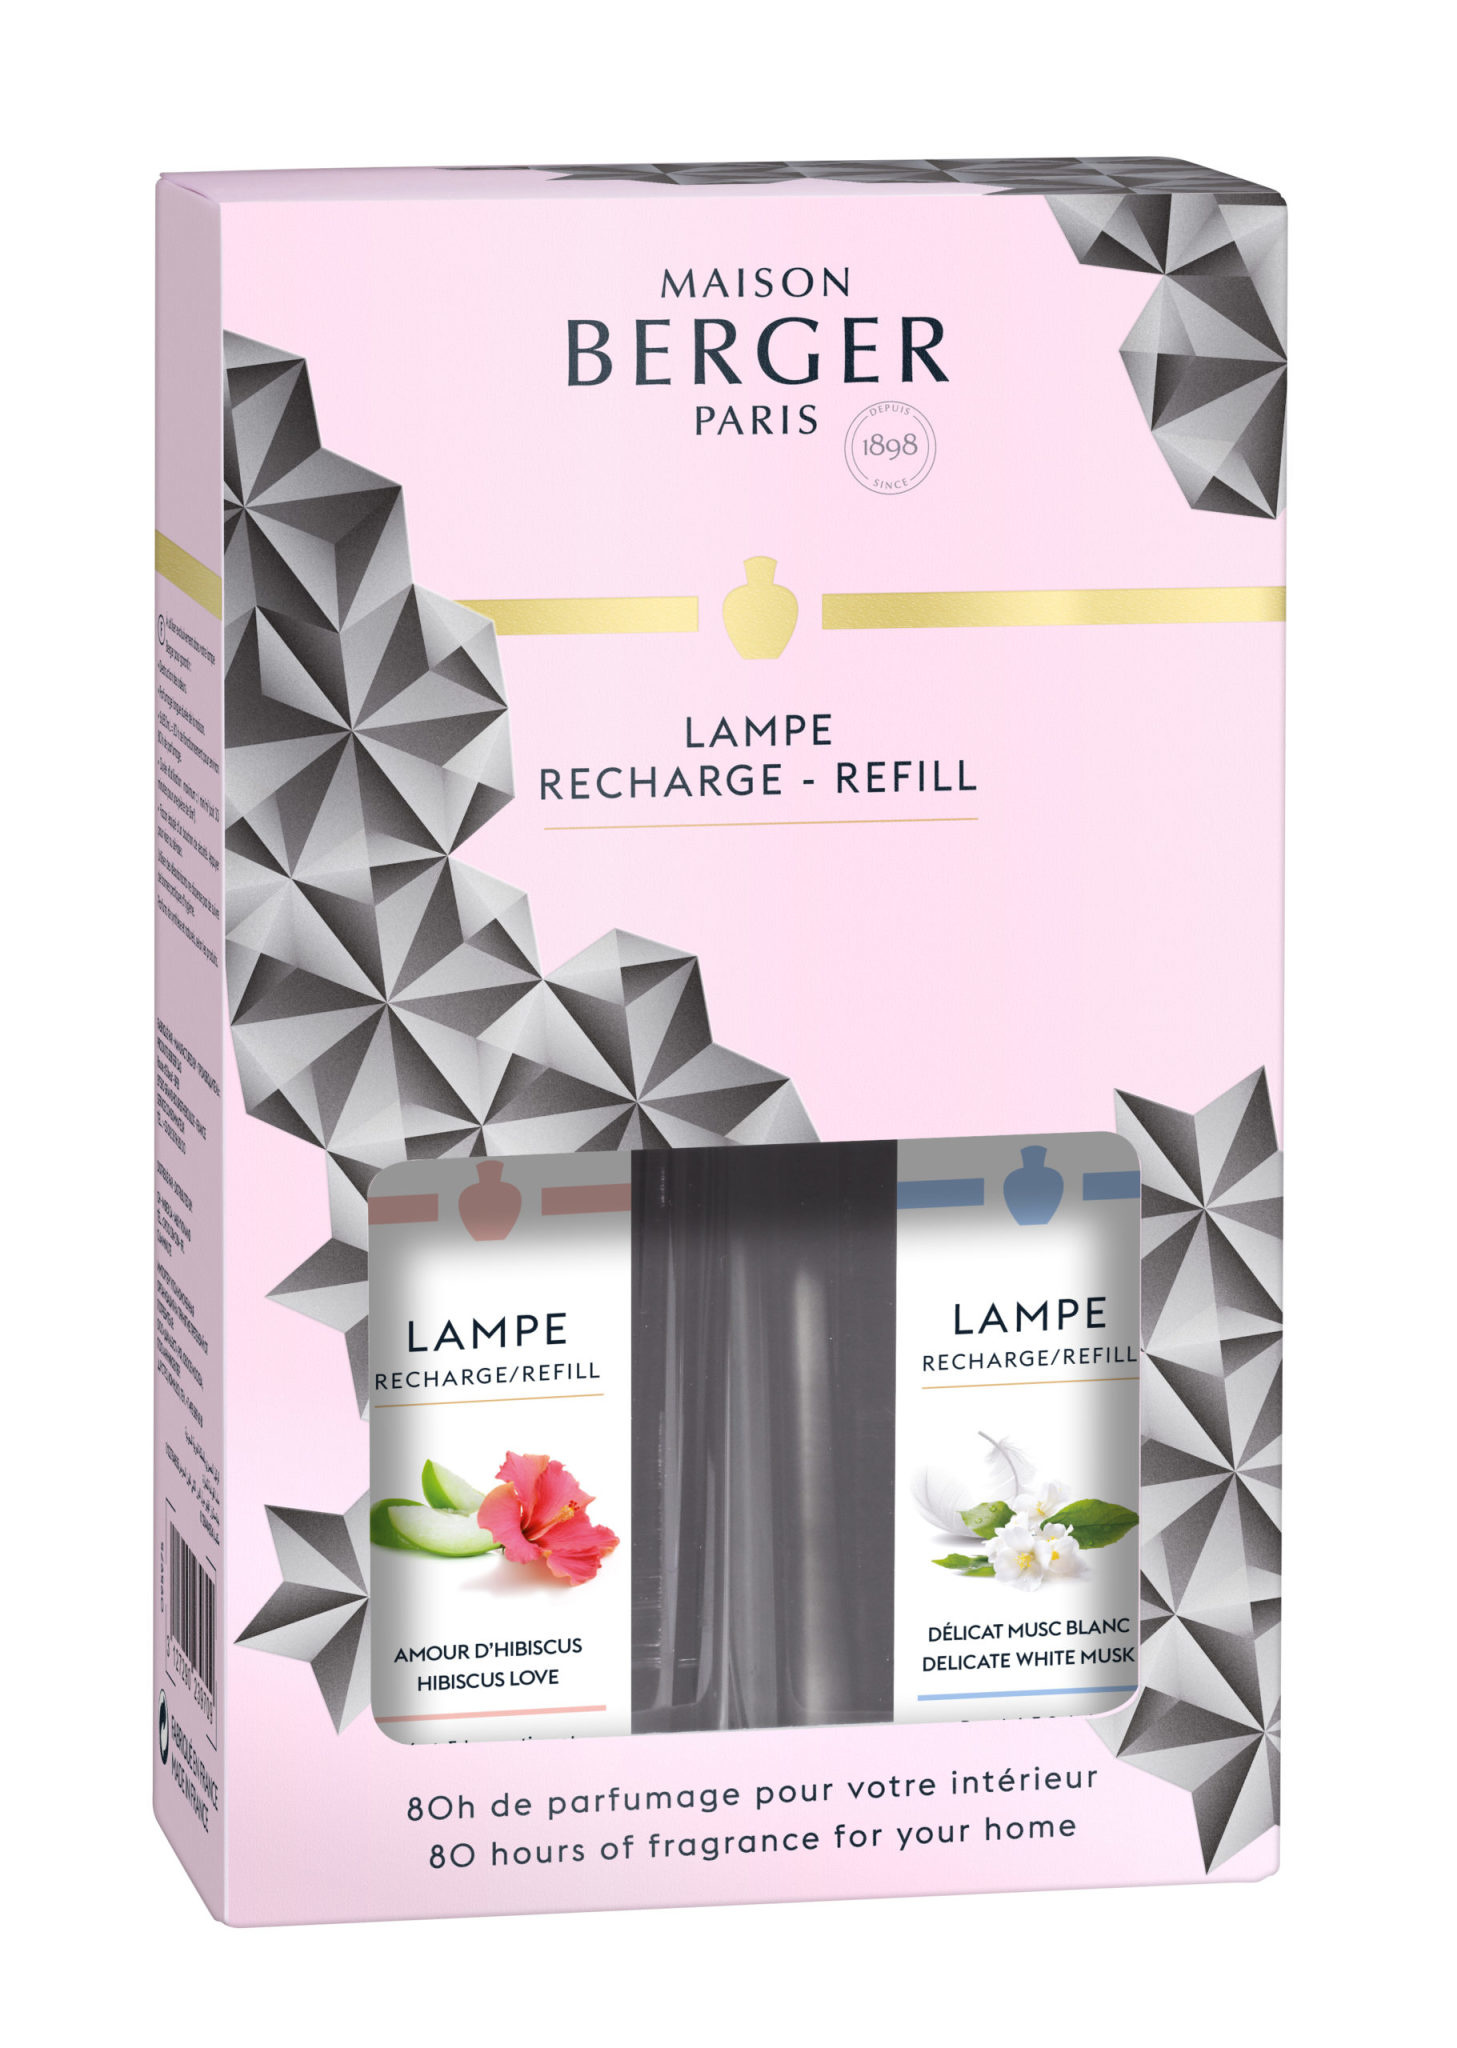 Maison Berger Black Crystal Delicate White Musk 250ml & Hibiscus Love @50ml